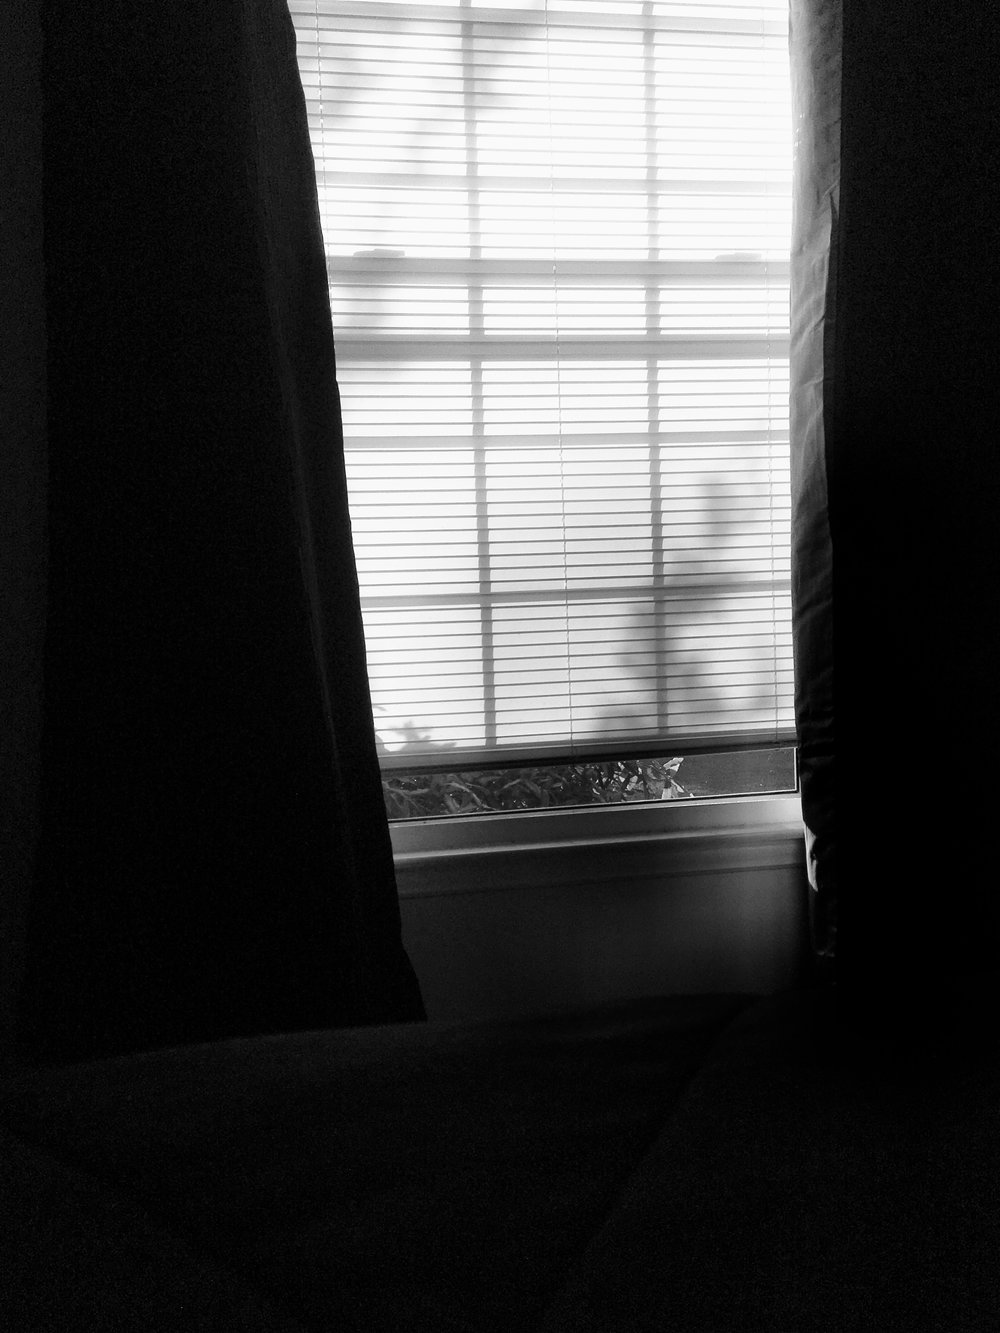 0805 || I make it a point to open the black out curtains in my room and make my bed before I get dressed in the morning. Not entirely sure why though, although my mother always tried to get me to make my bed and I never did growing up.